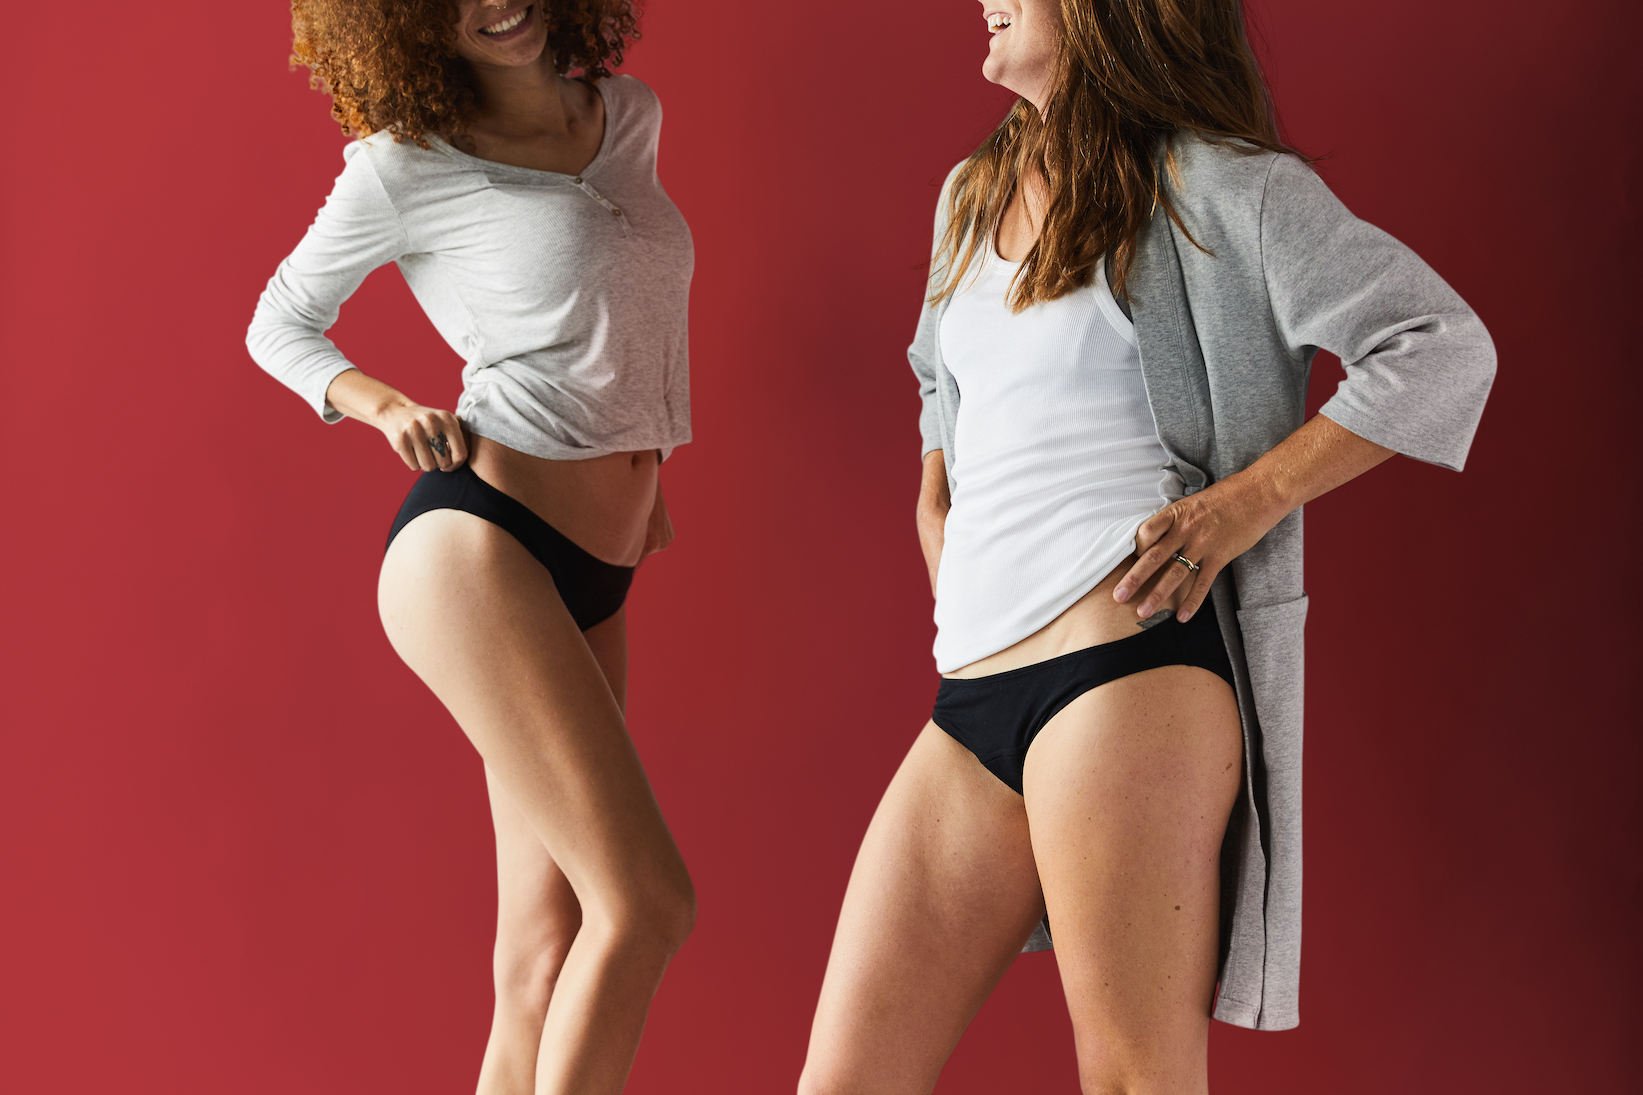 two women in tops and black period underwear against red background